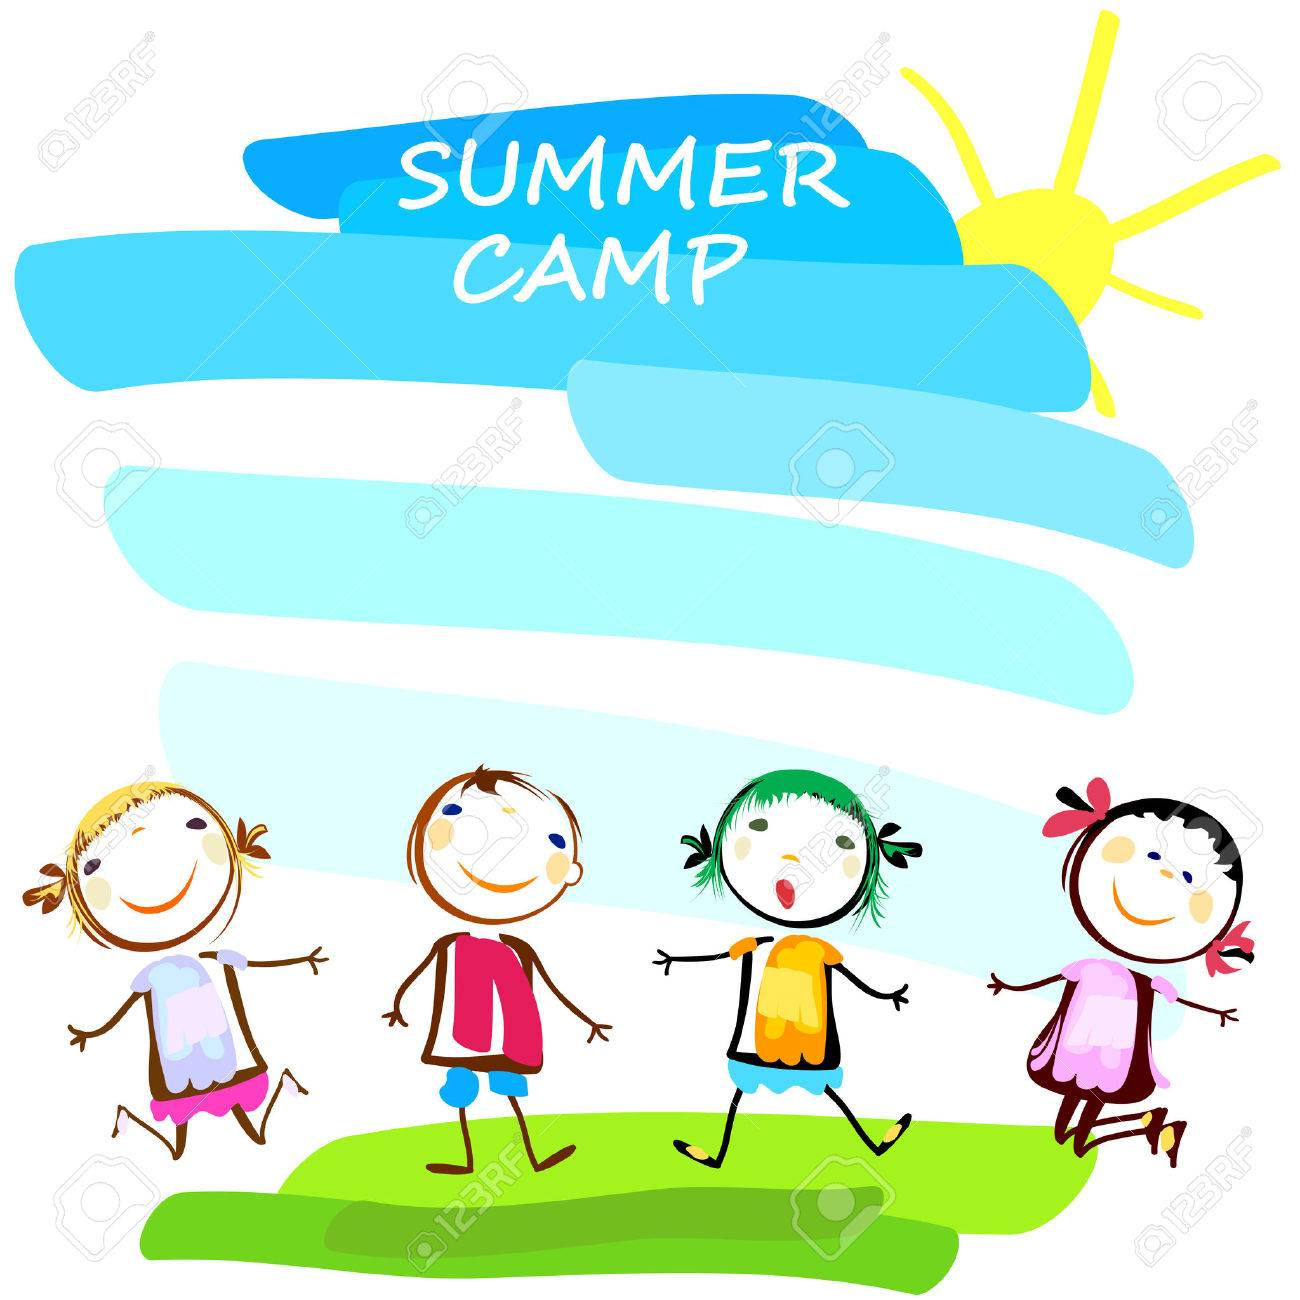 Campamento clipart royalty free Summer Camp Image | Free download best Summer Camp Image on ... royalty free